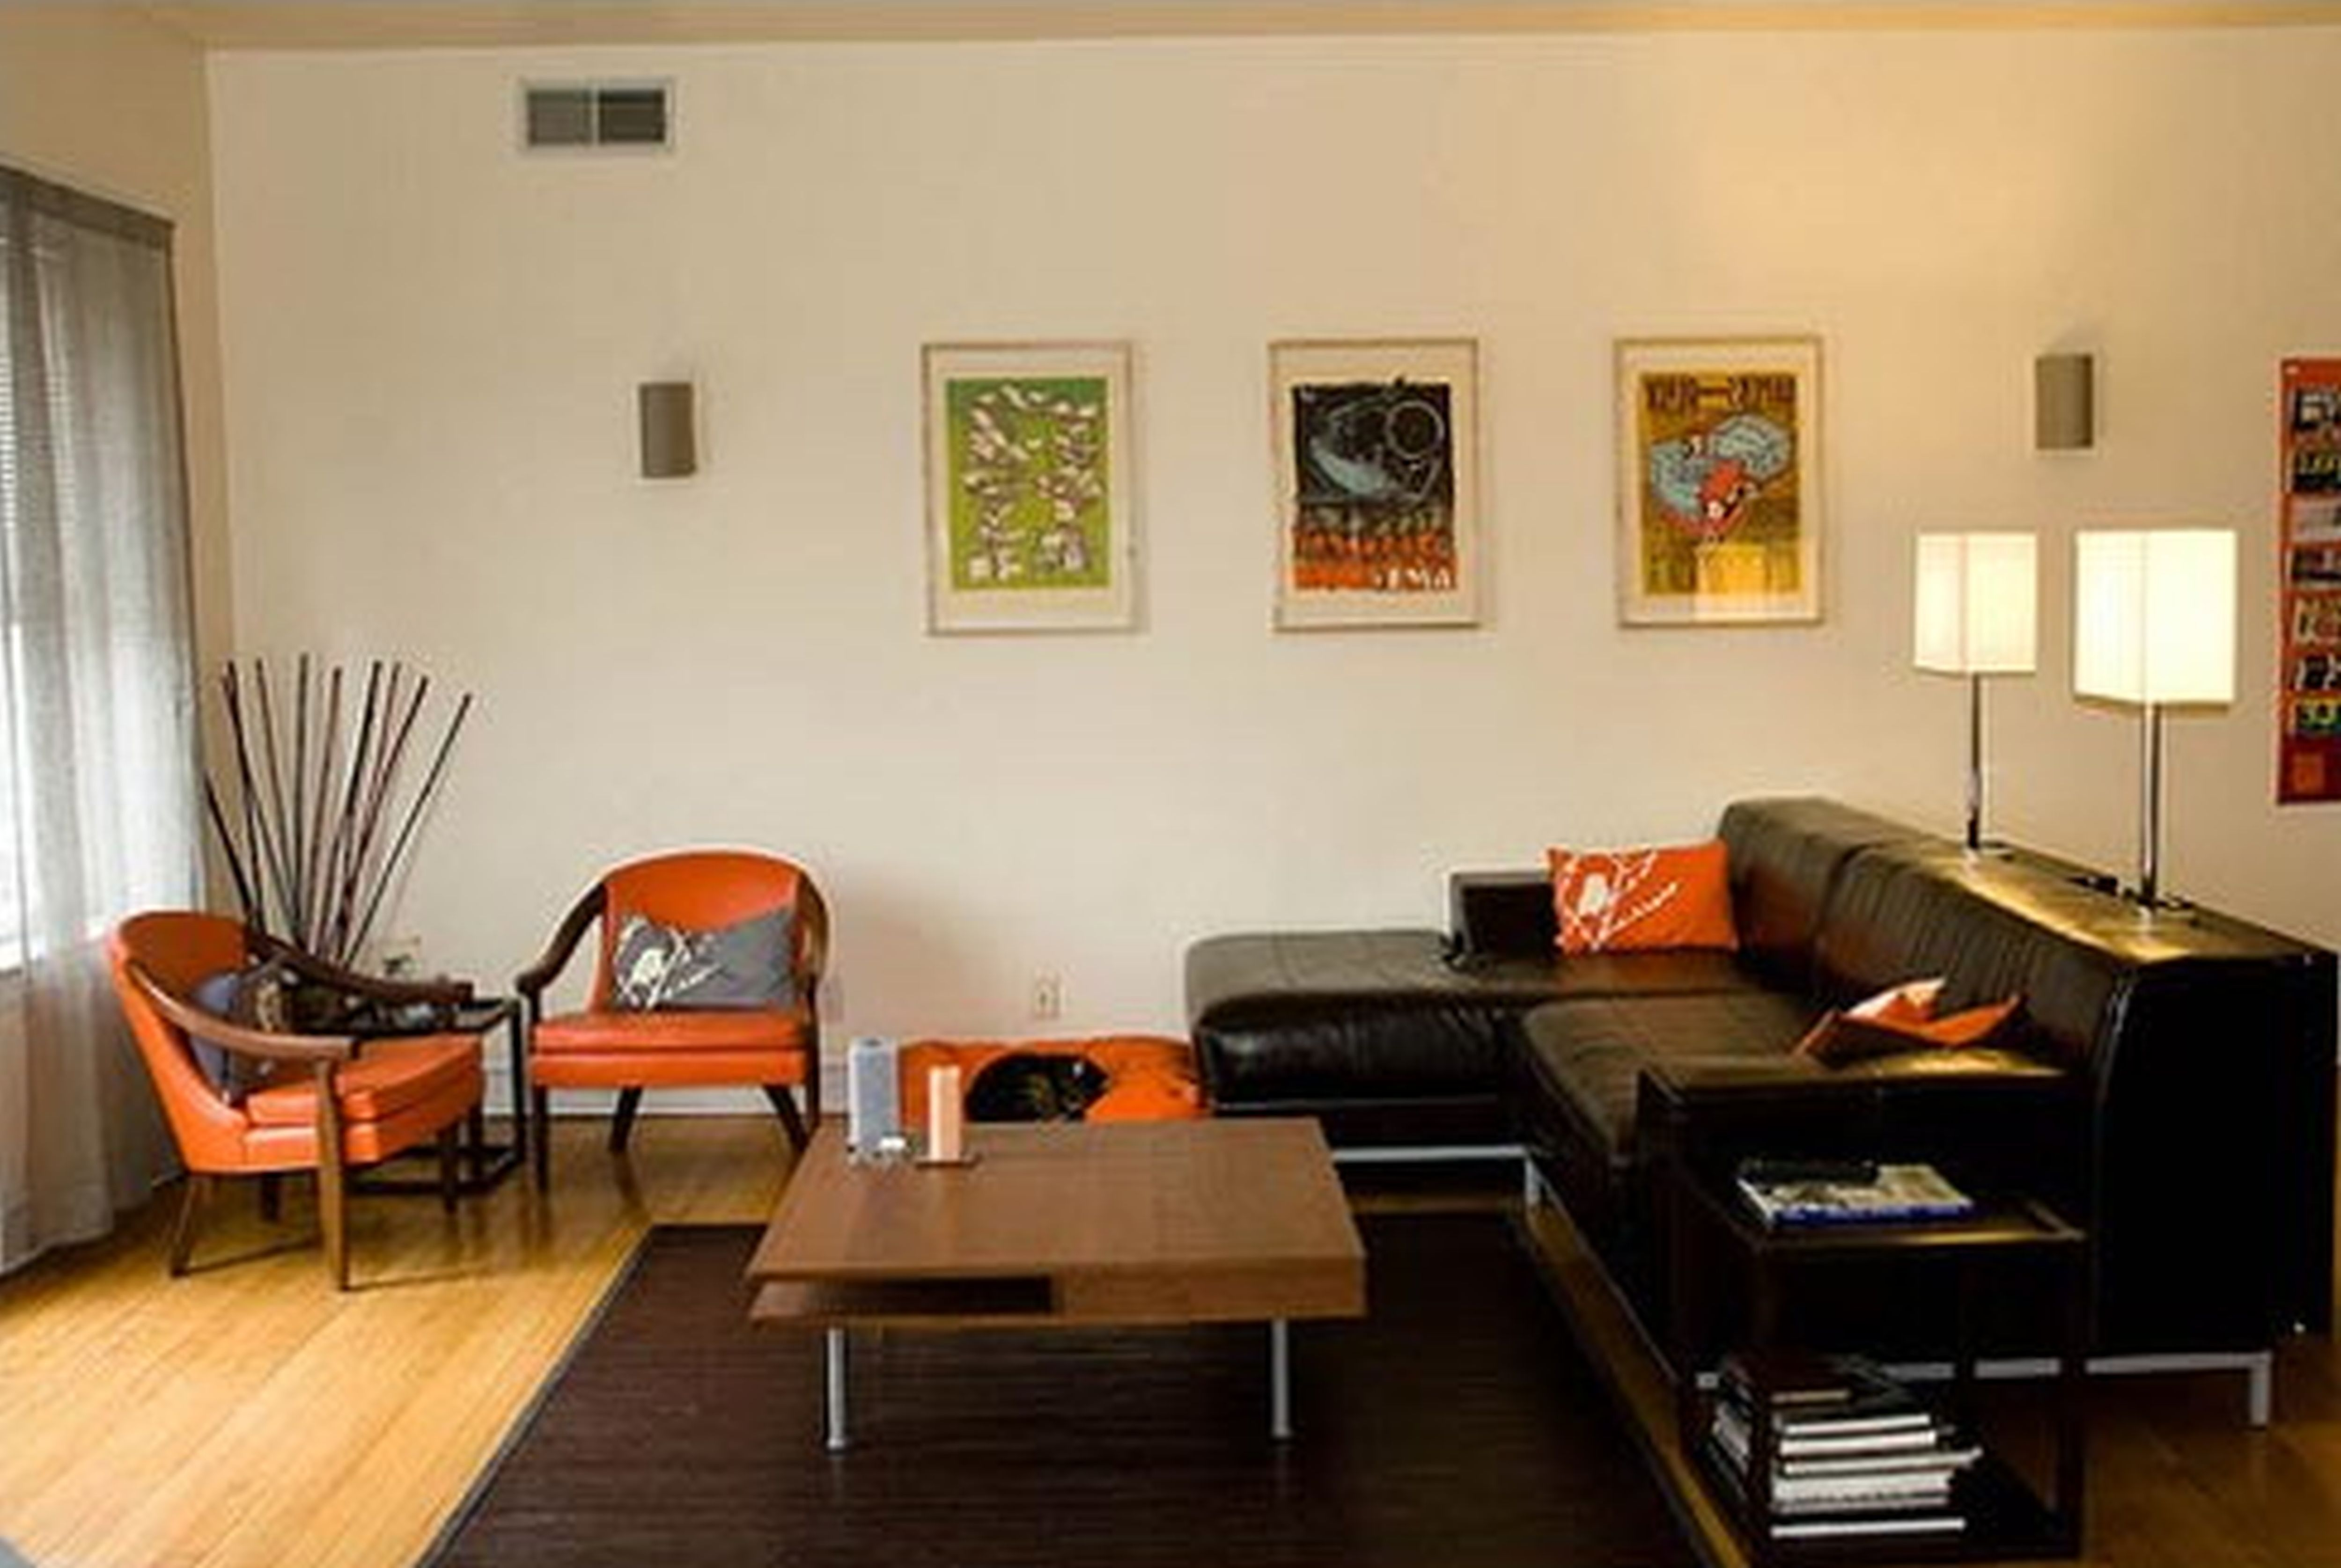 Mesmerize Urban Living Room Decorating Ideas Catchy Urban Living. 1 Bedroom Apartment Decorating Ideas. Rental Apartment Smart Decorating Ideas Youtube Apartment. Studio Design Ideas Decorating Studio Apartments Small